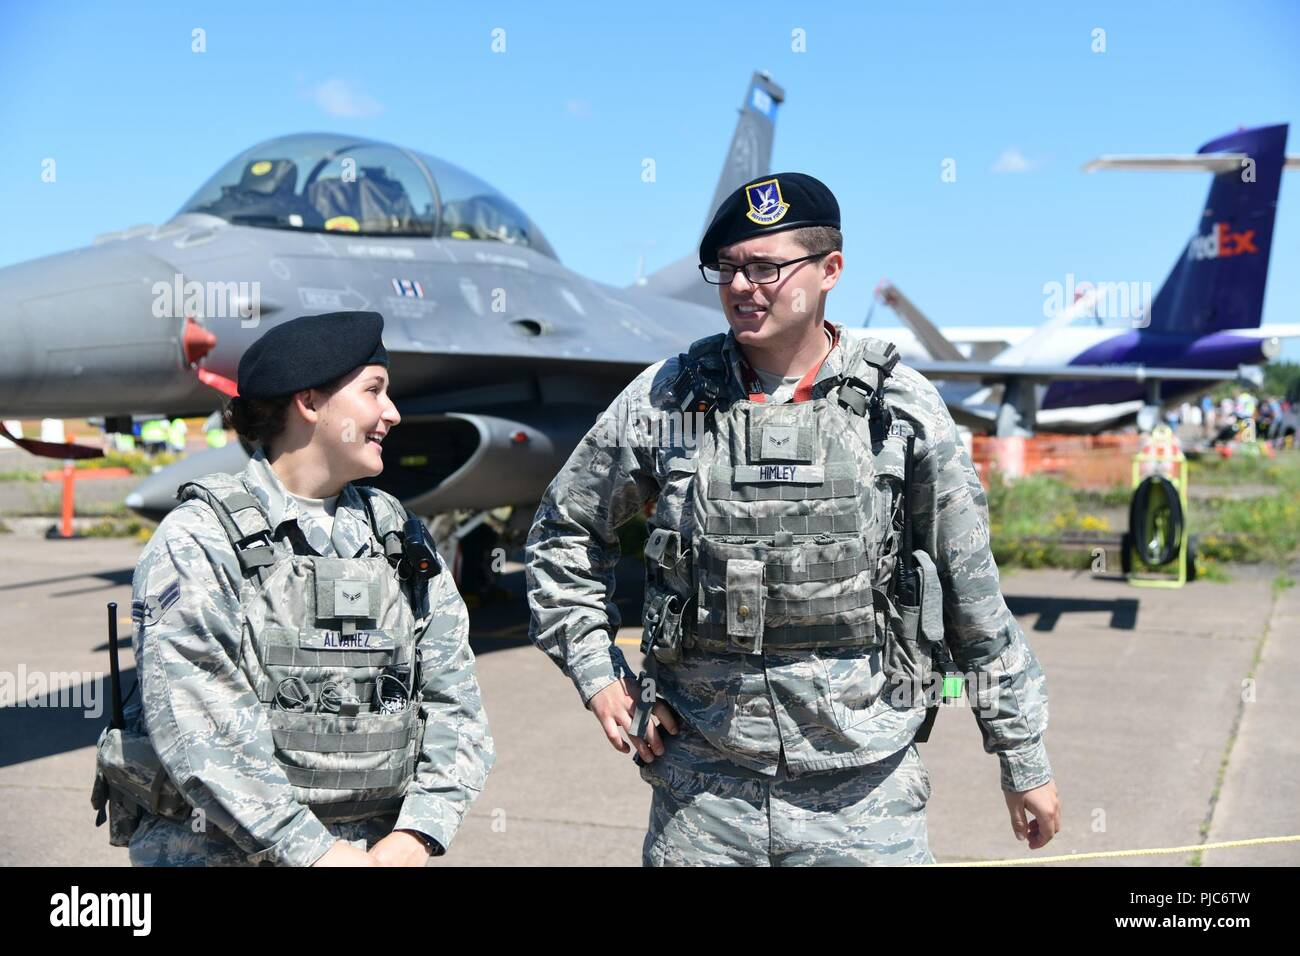 Two members of the 148th Security Forces Squadron provide